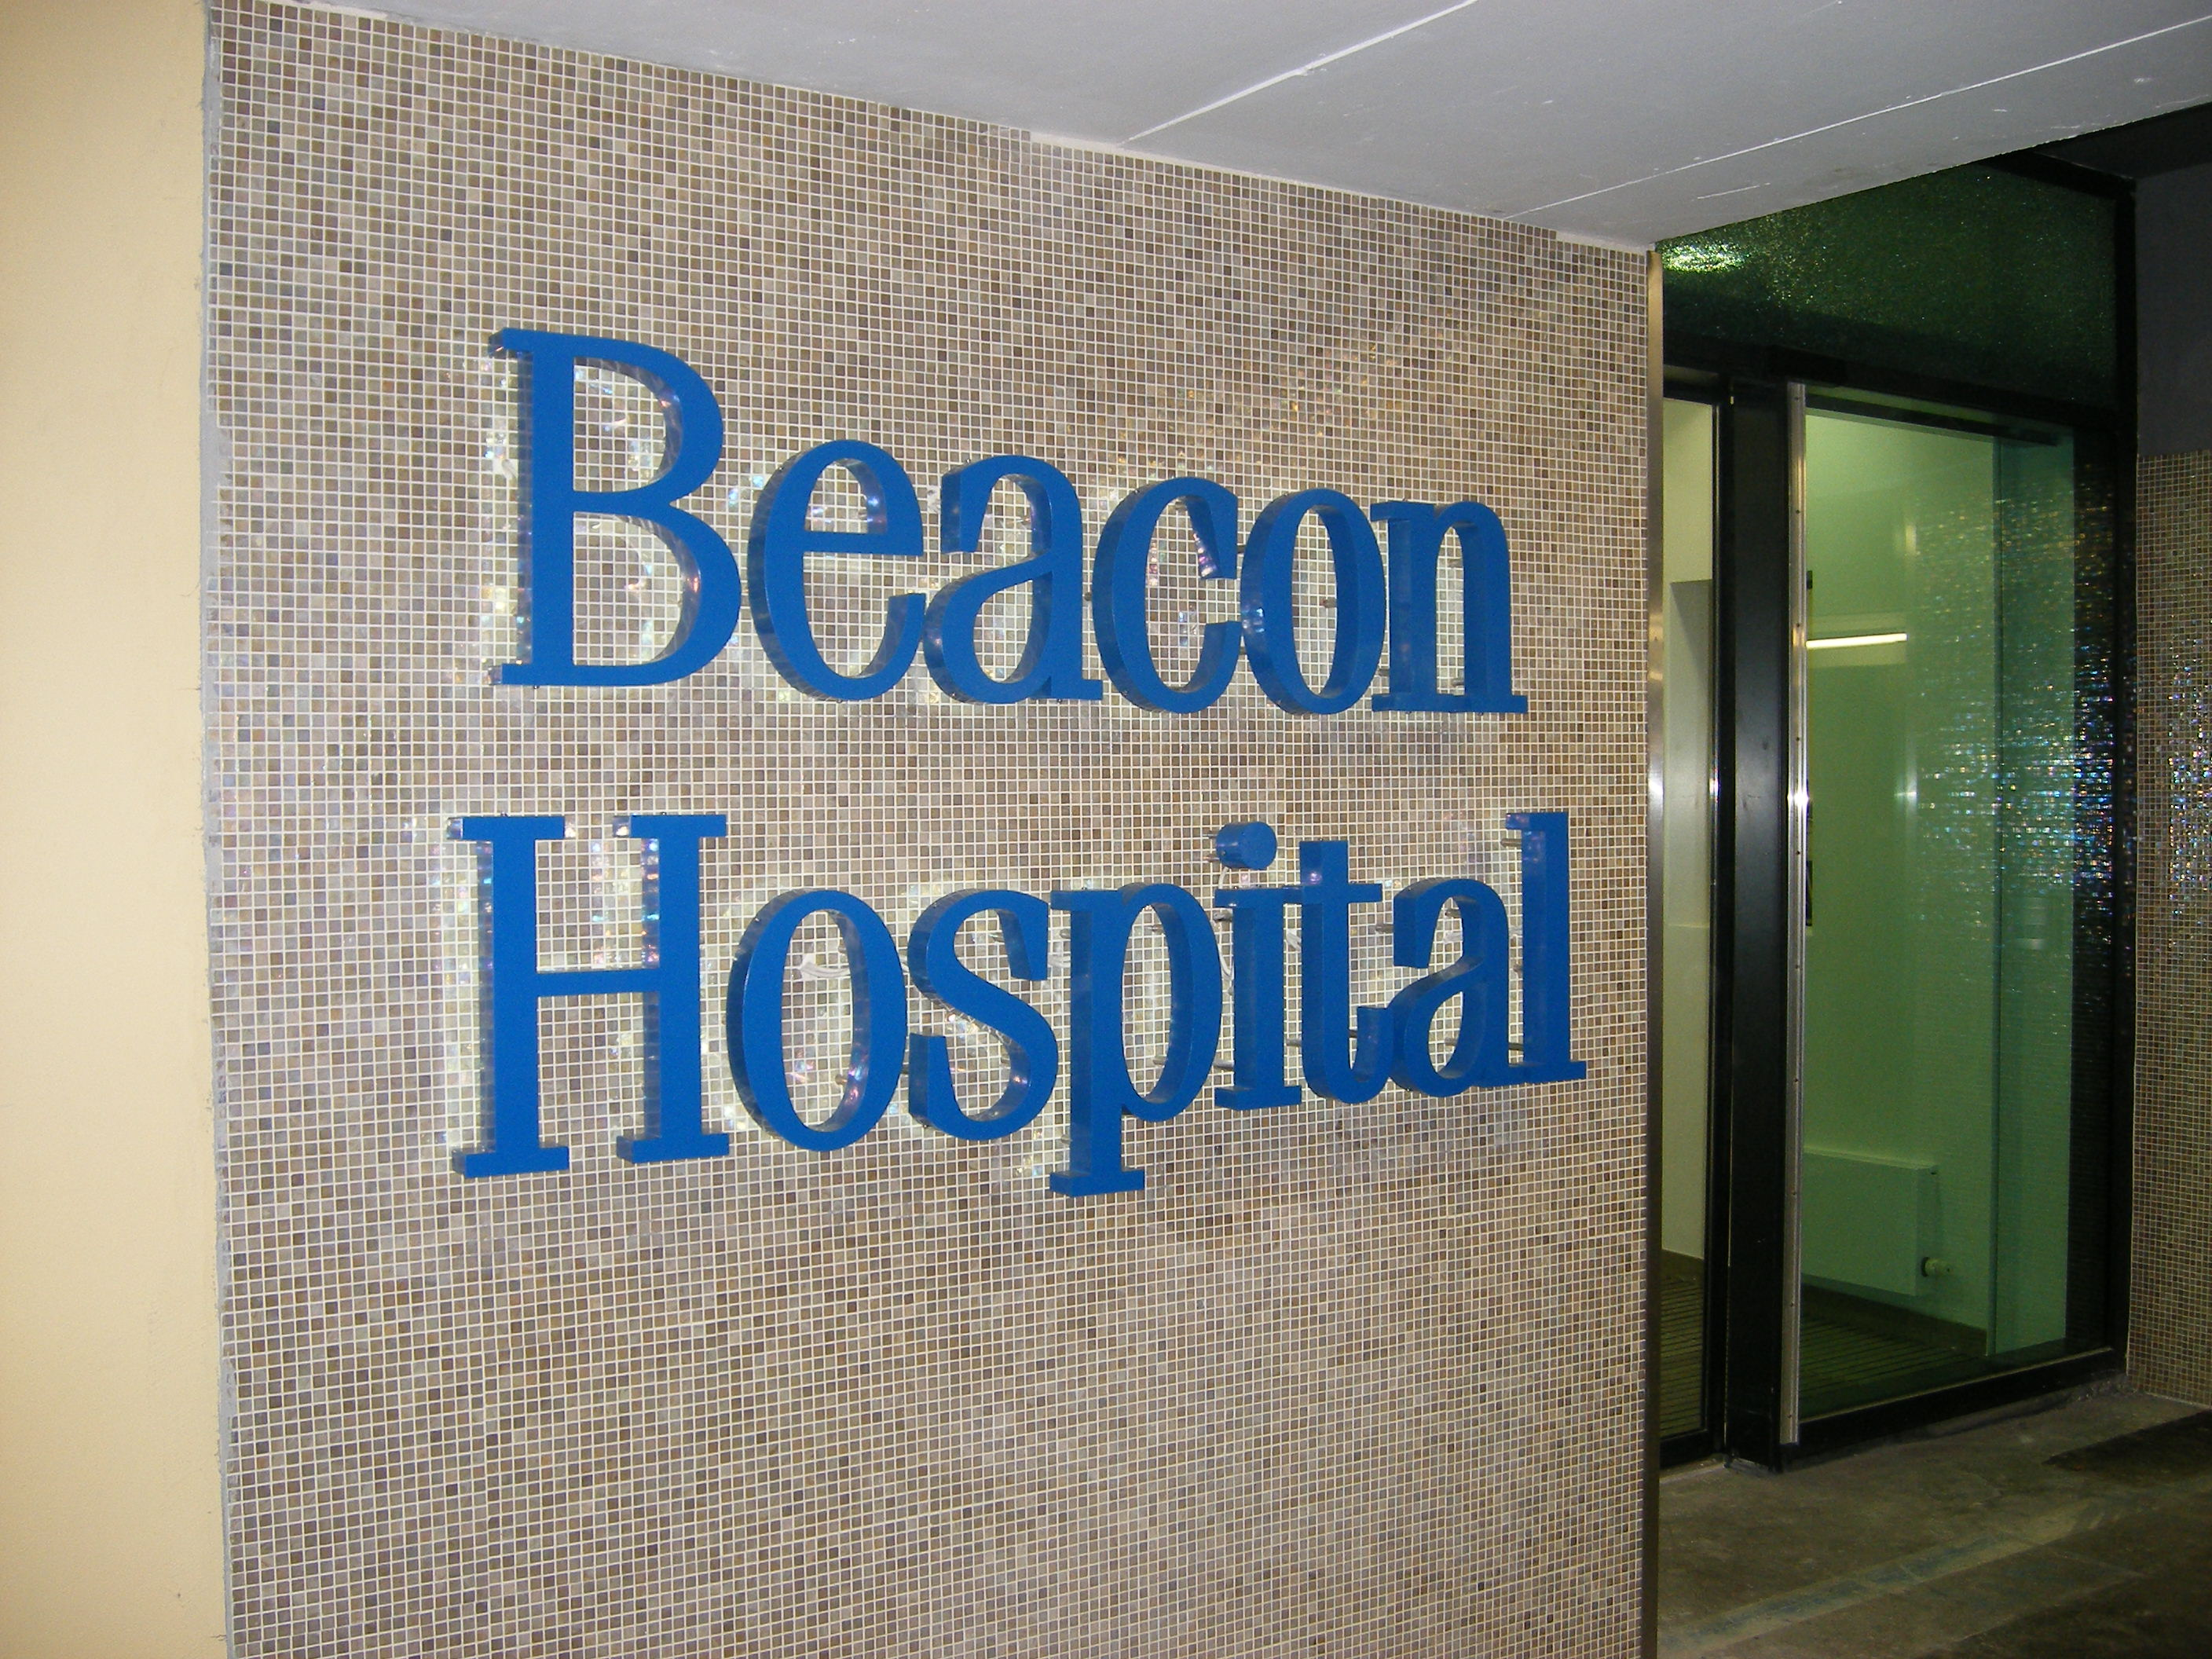 LED Internally Illuminated Individual Aluminium Lettering for Beacon Hospital